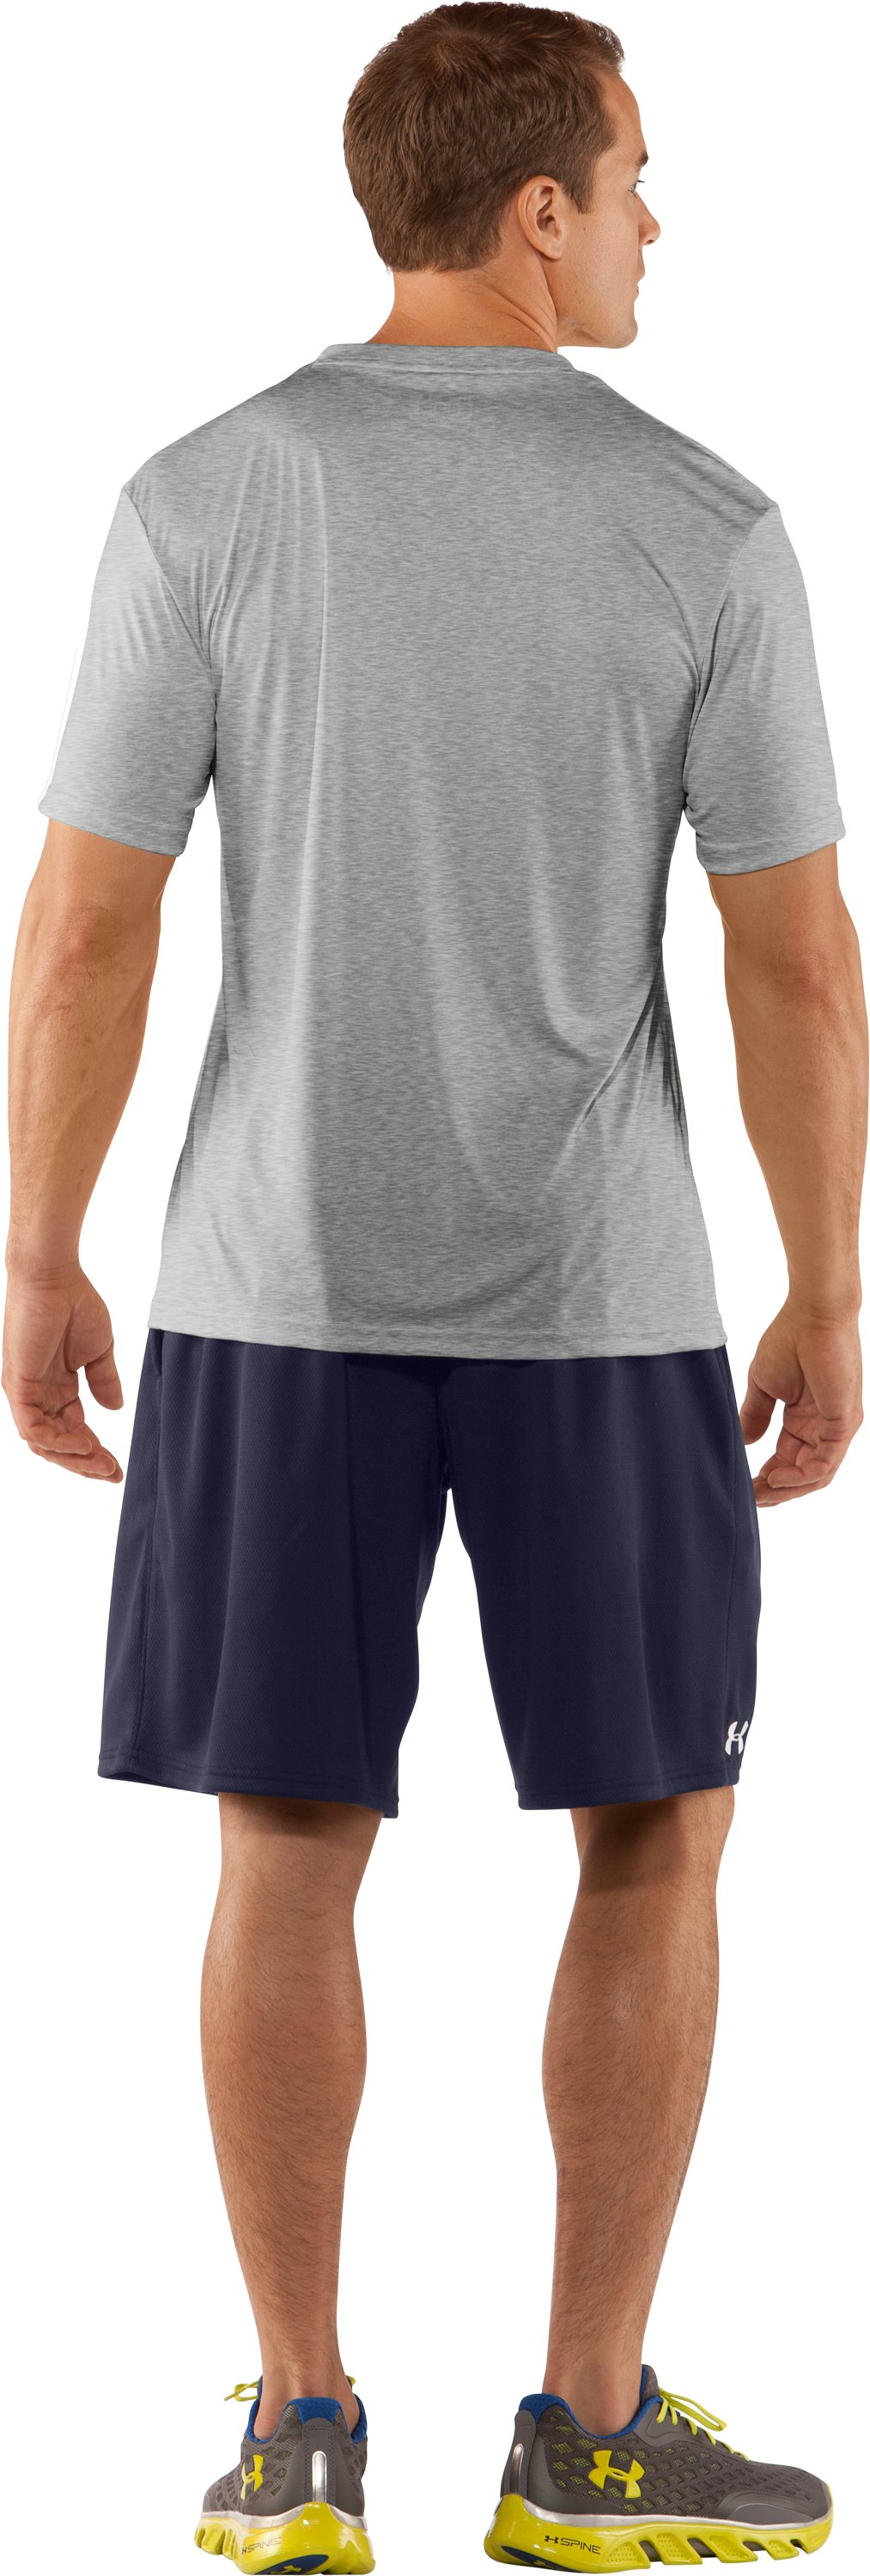 Men's Tottenham Hotspur 1882 T-Shirt, True Gray Heather, Back